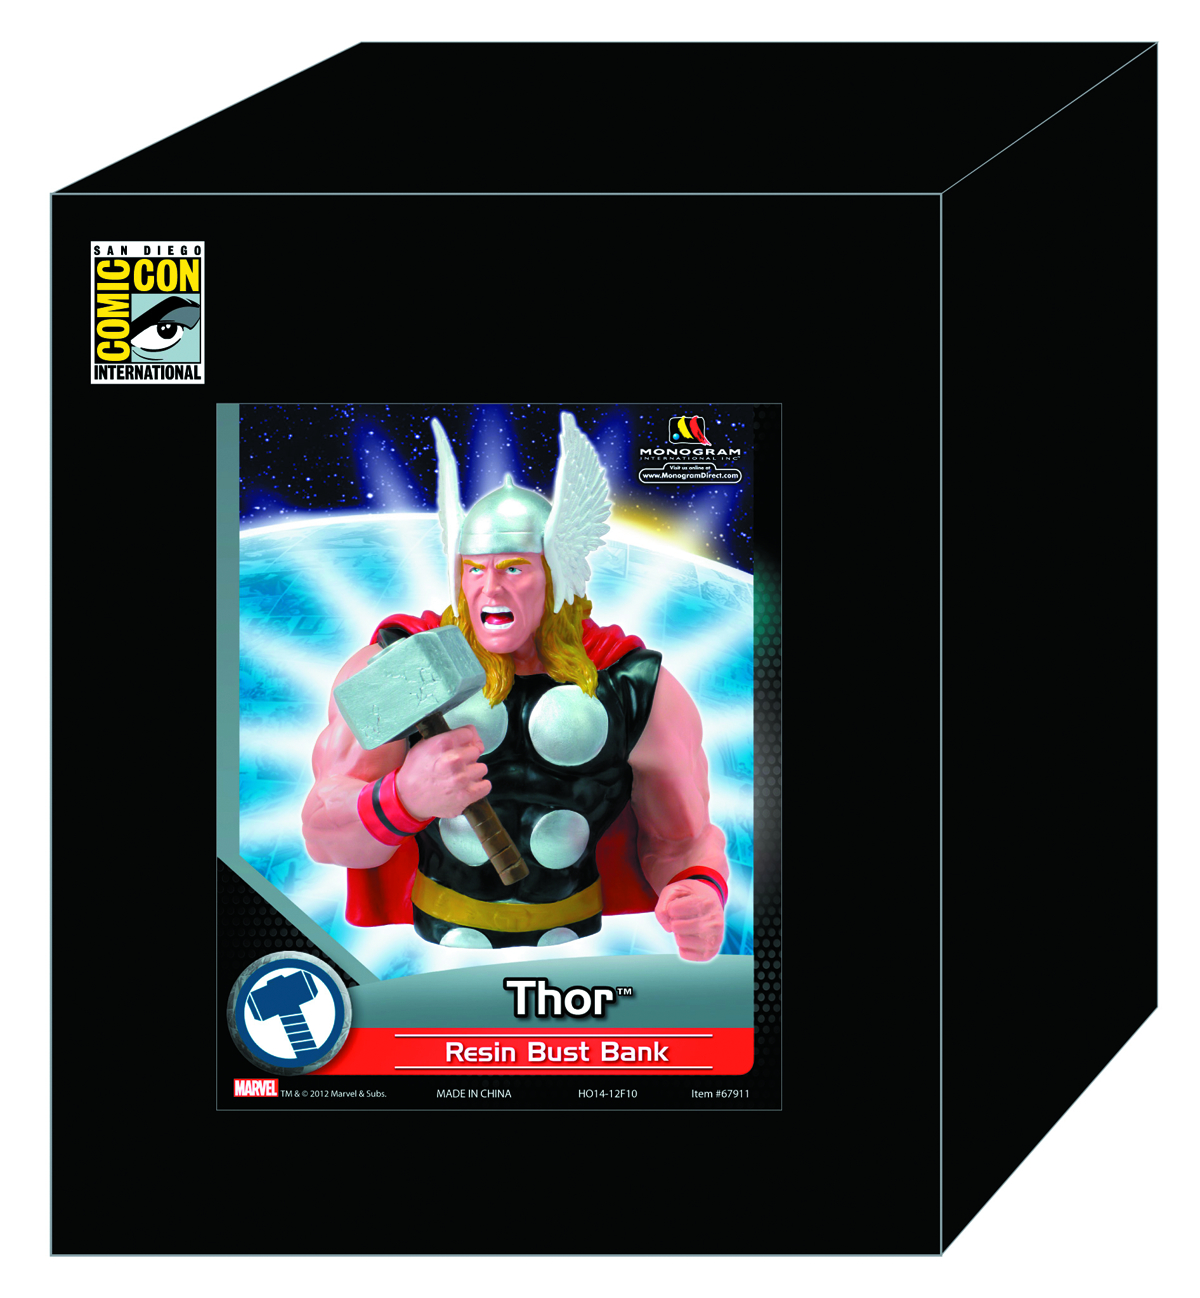 SDCC 2012 THOR RESIN BUST BANK